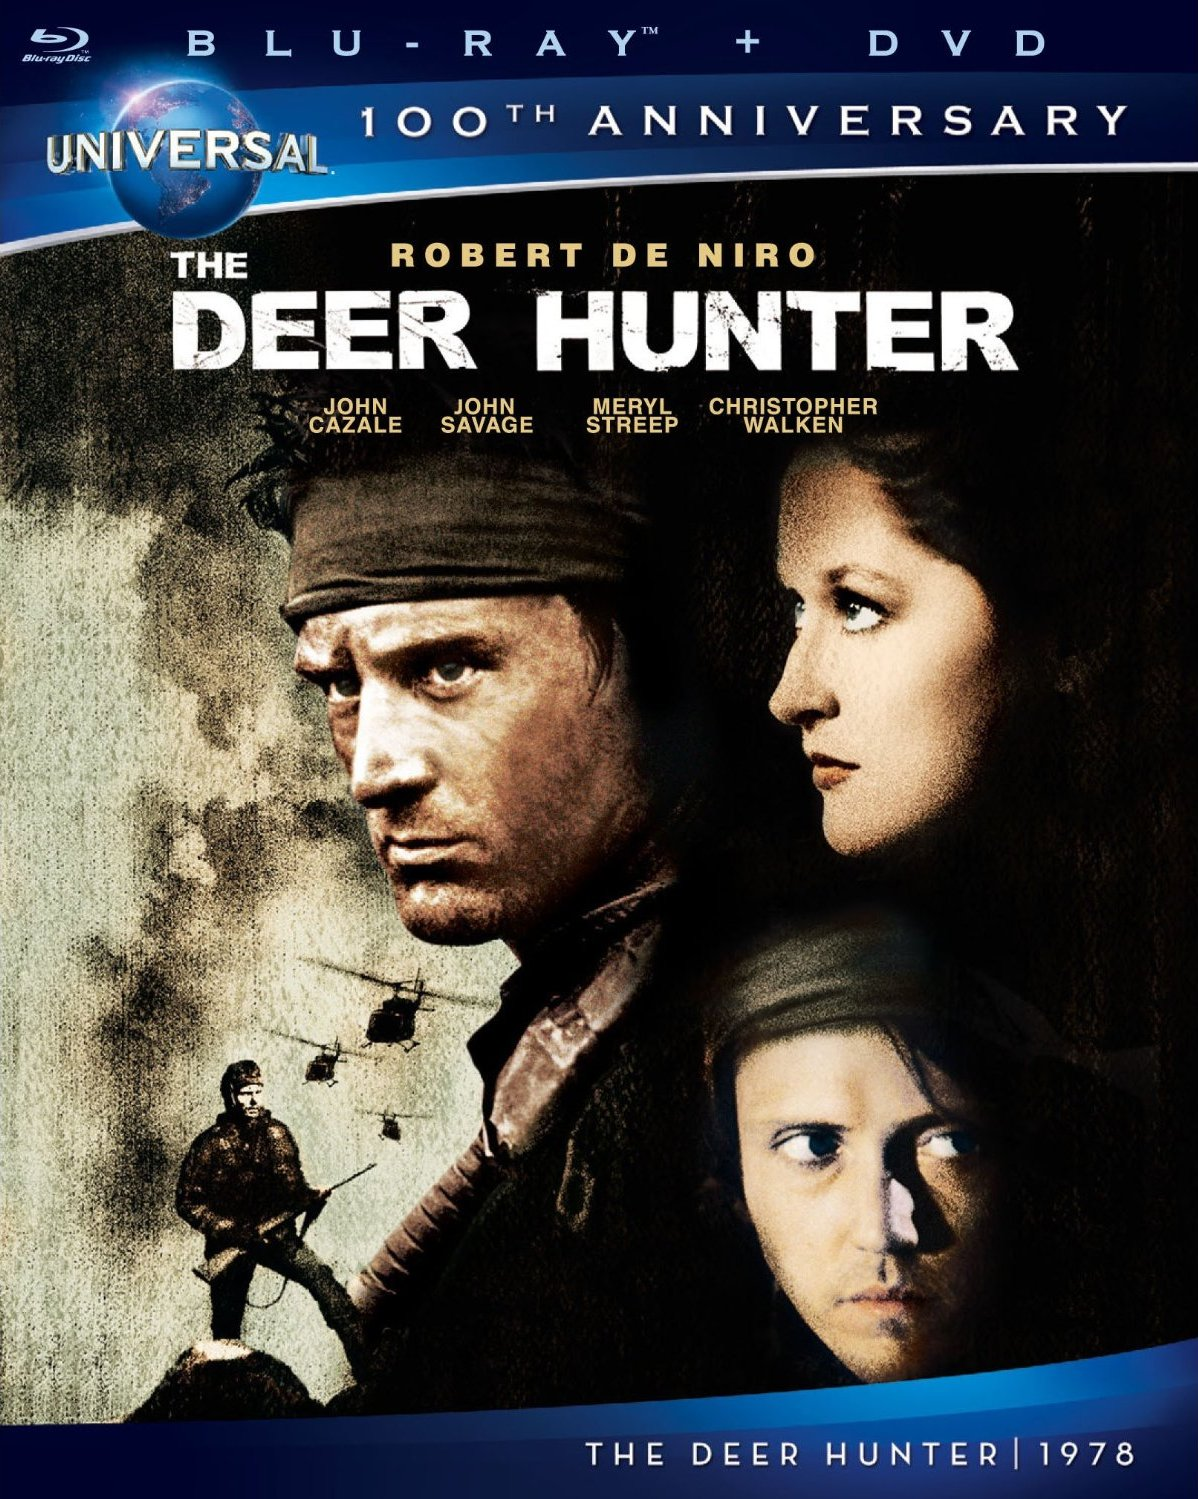 The Deer Hunter (1978) Blu-ray Movie Robert De Niro